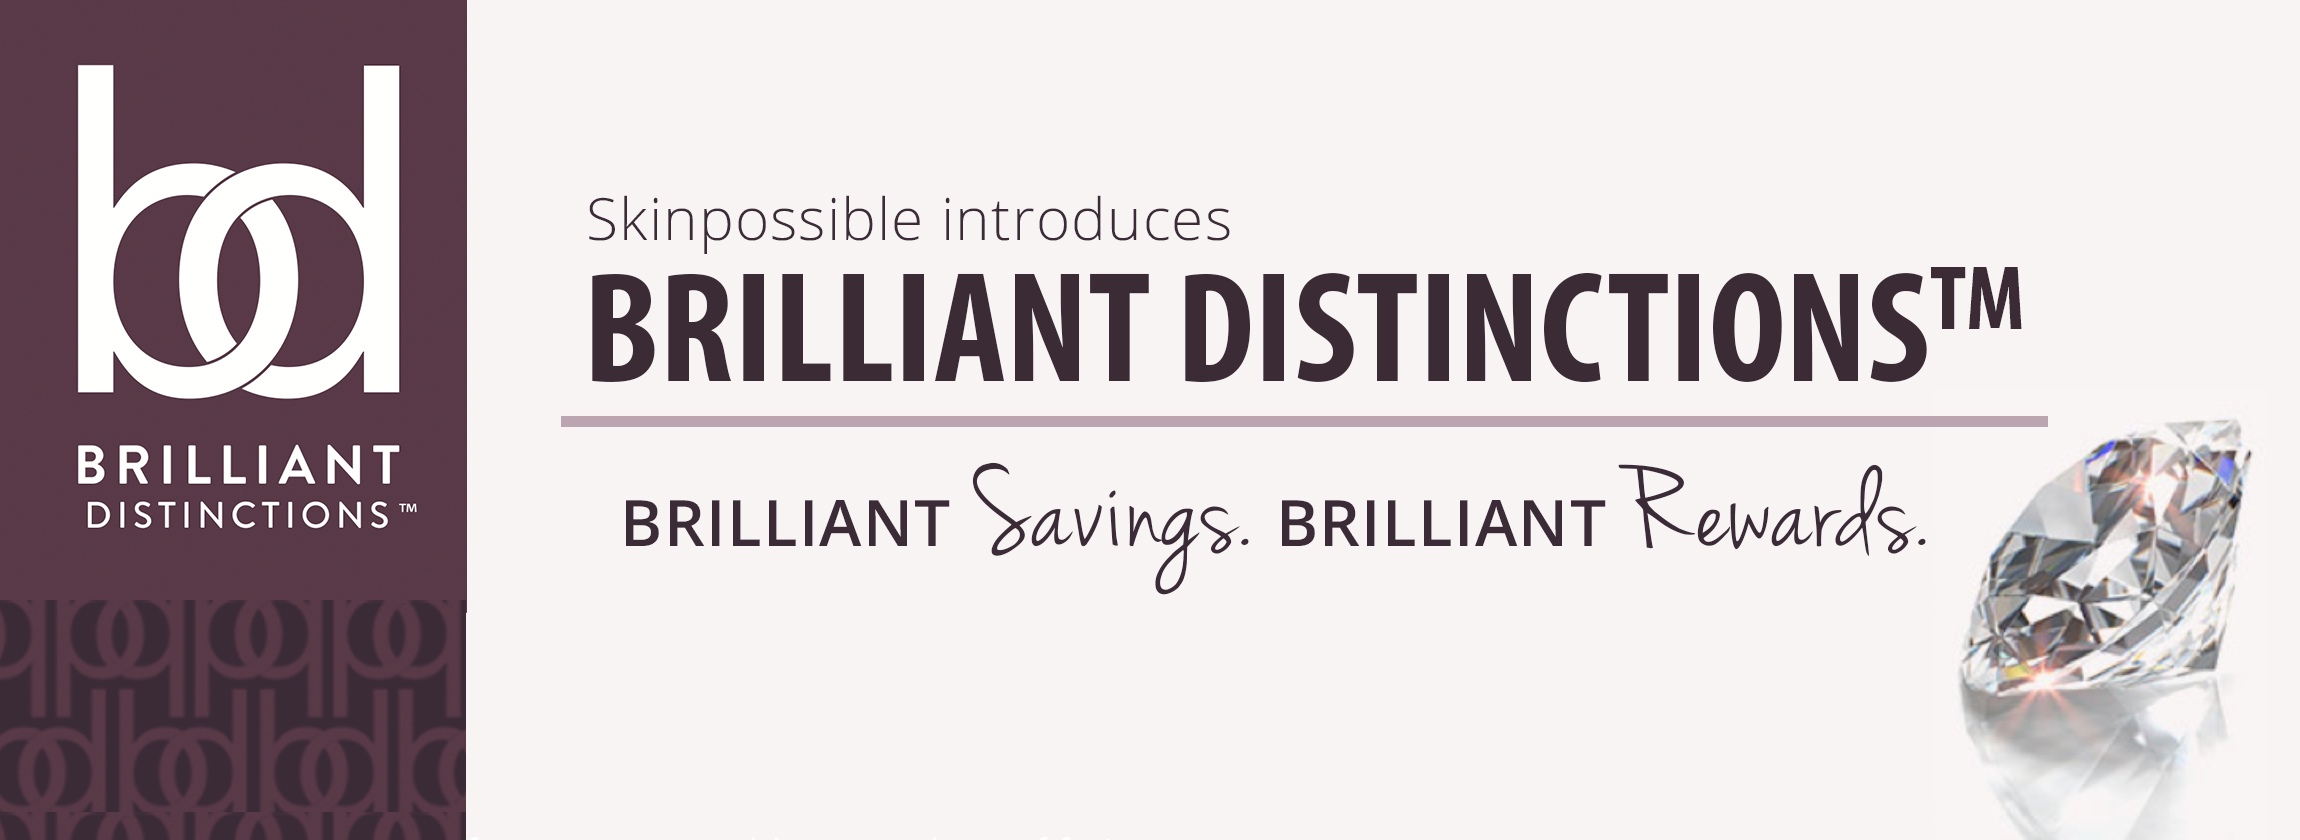 Brilliant-distinctions-reward-banner